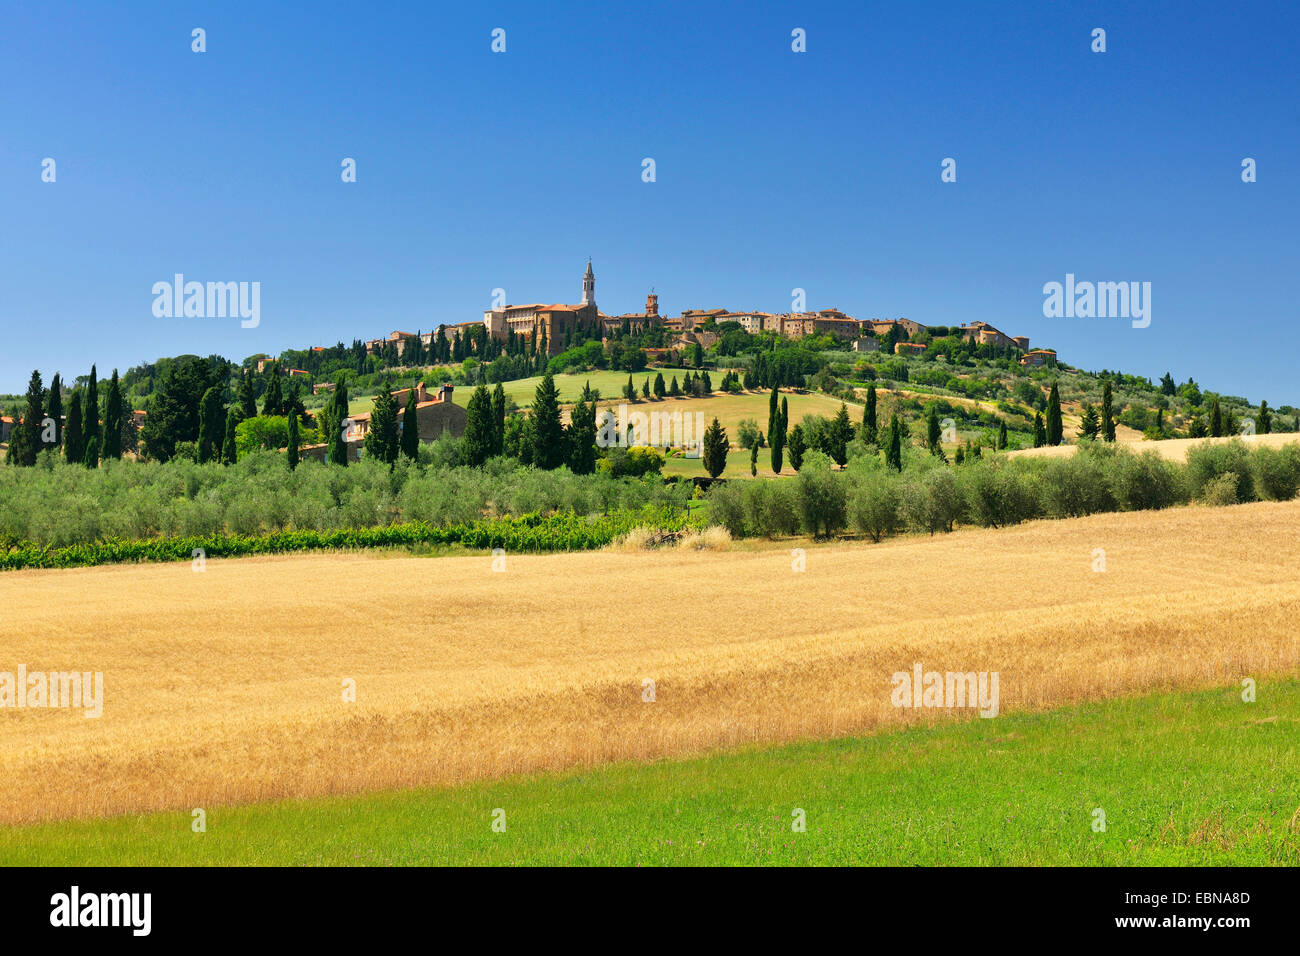 wheat field in summer with historic town of Pienza, Italy, Tuscany, Siena, Pienza - Stock Image